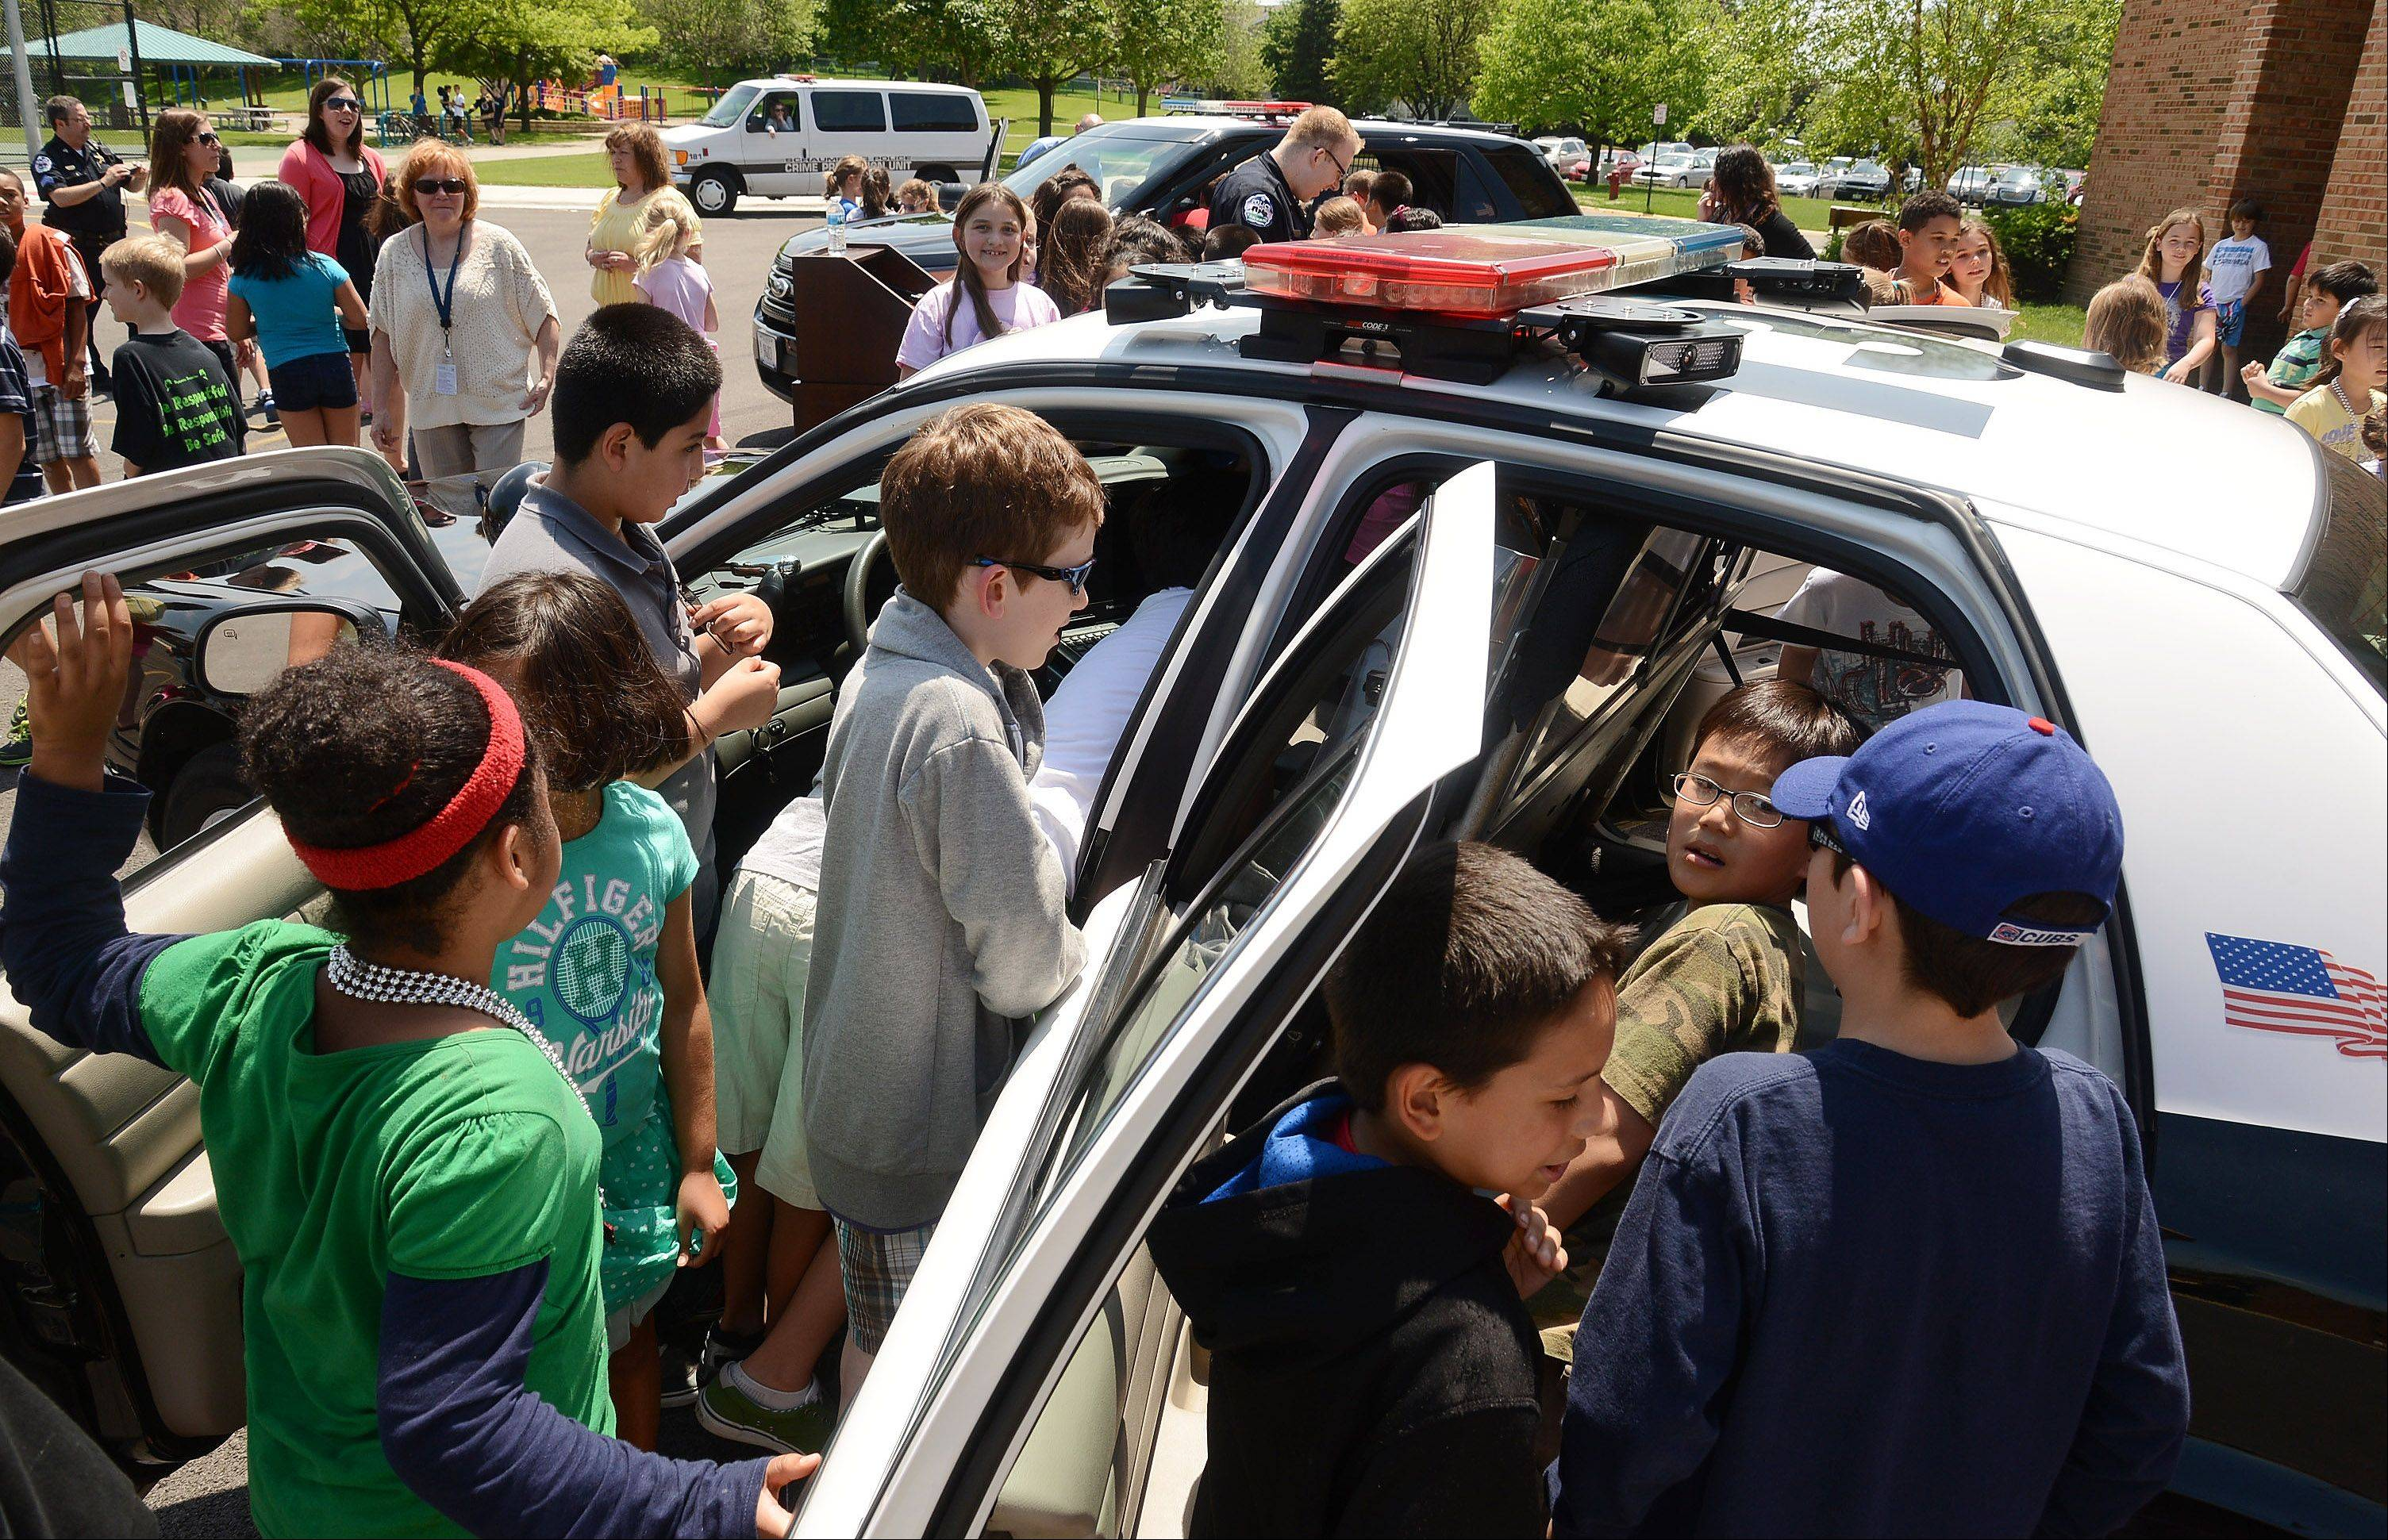 Schaumburg police unveil a new police SUV and squad car to third and fourth graders at Dirksen Elementary School Wednesday.